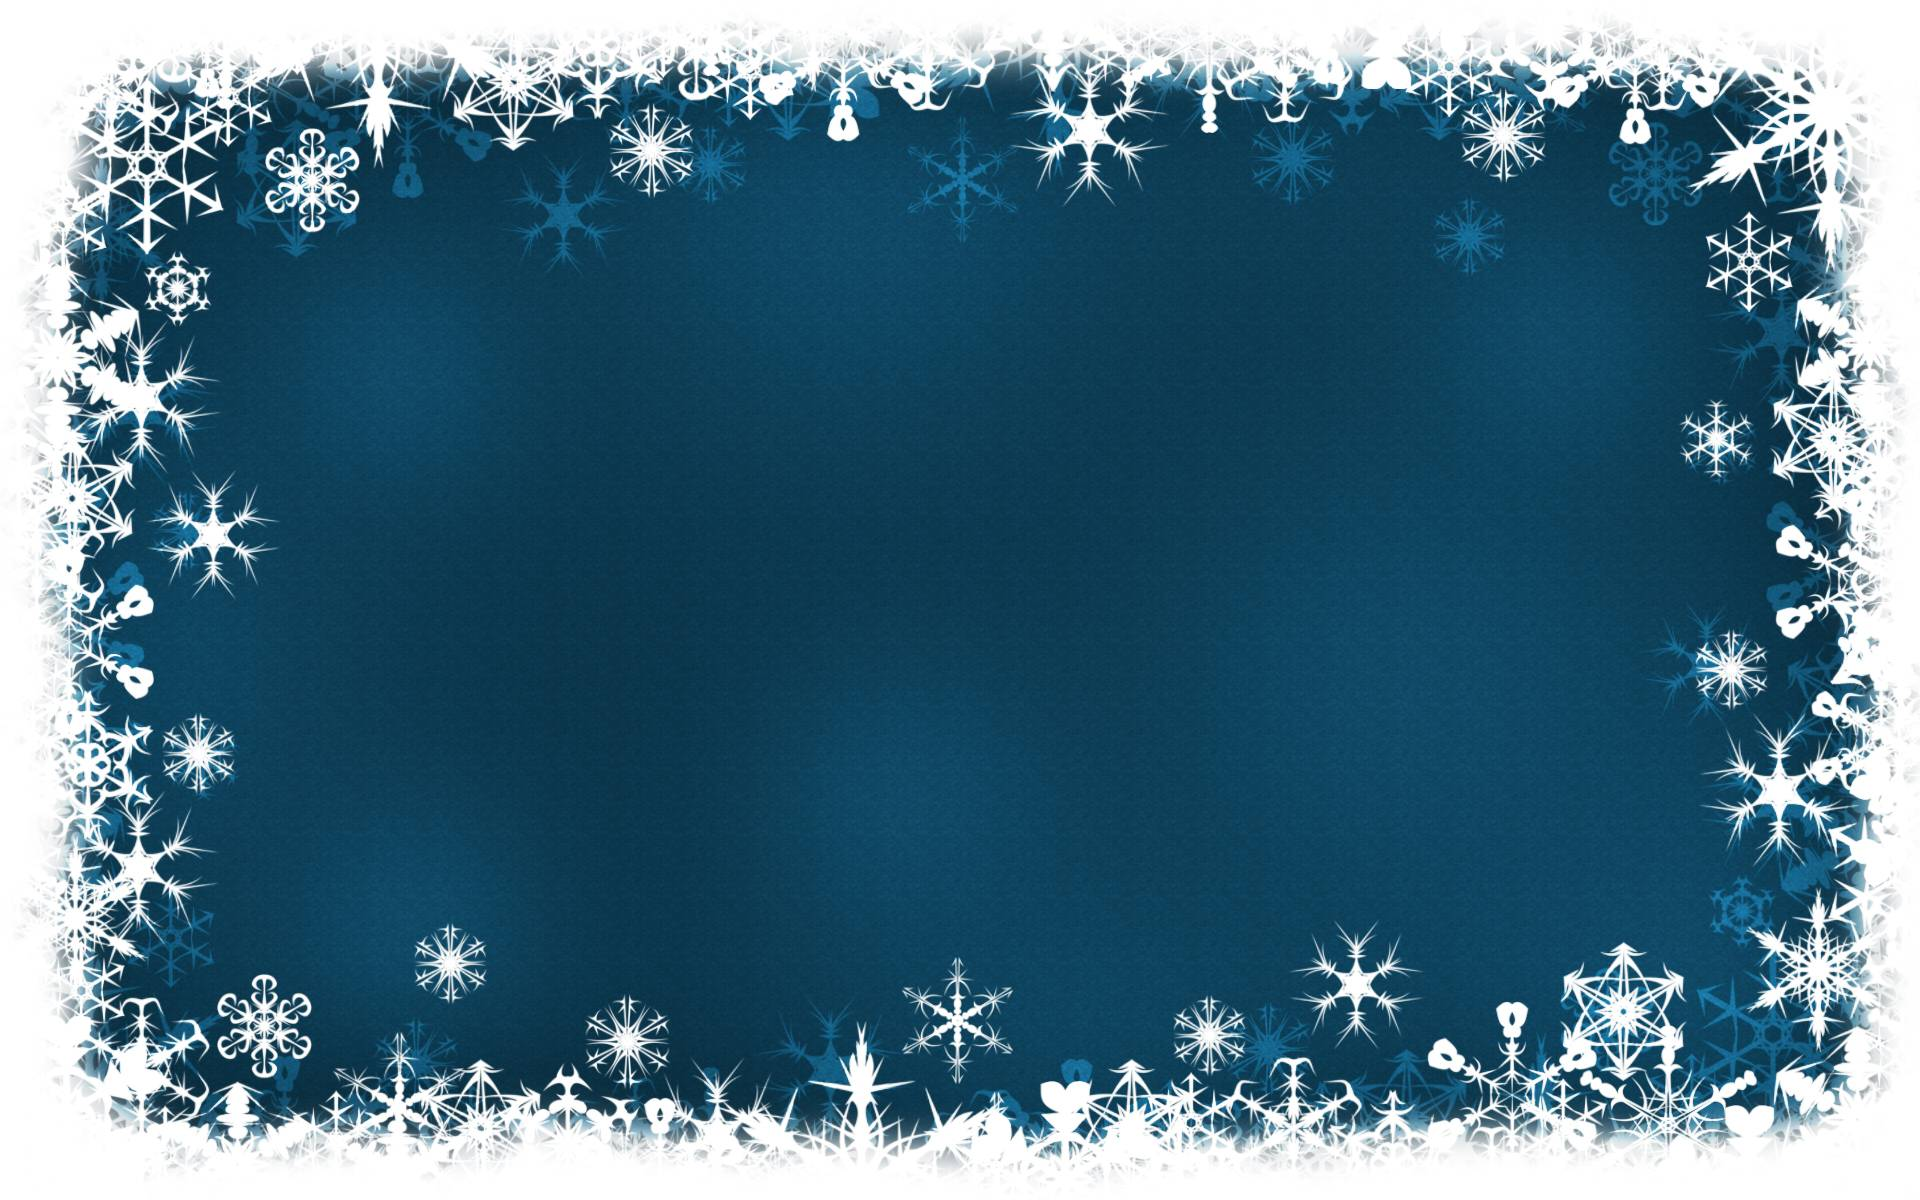 christmas image backgrounds - wallpaper cave